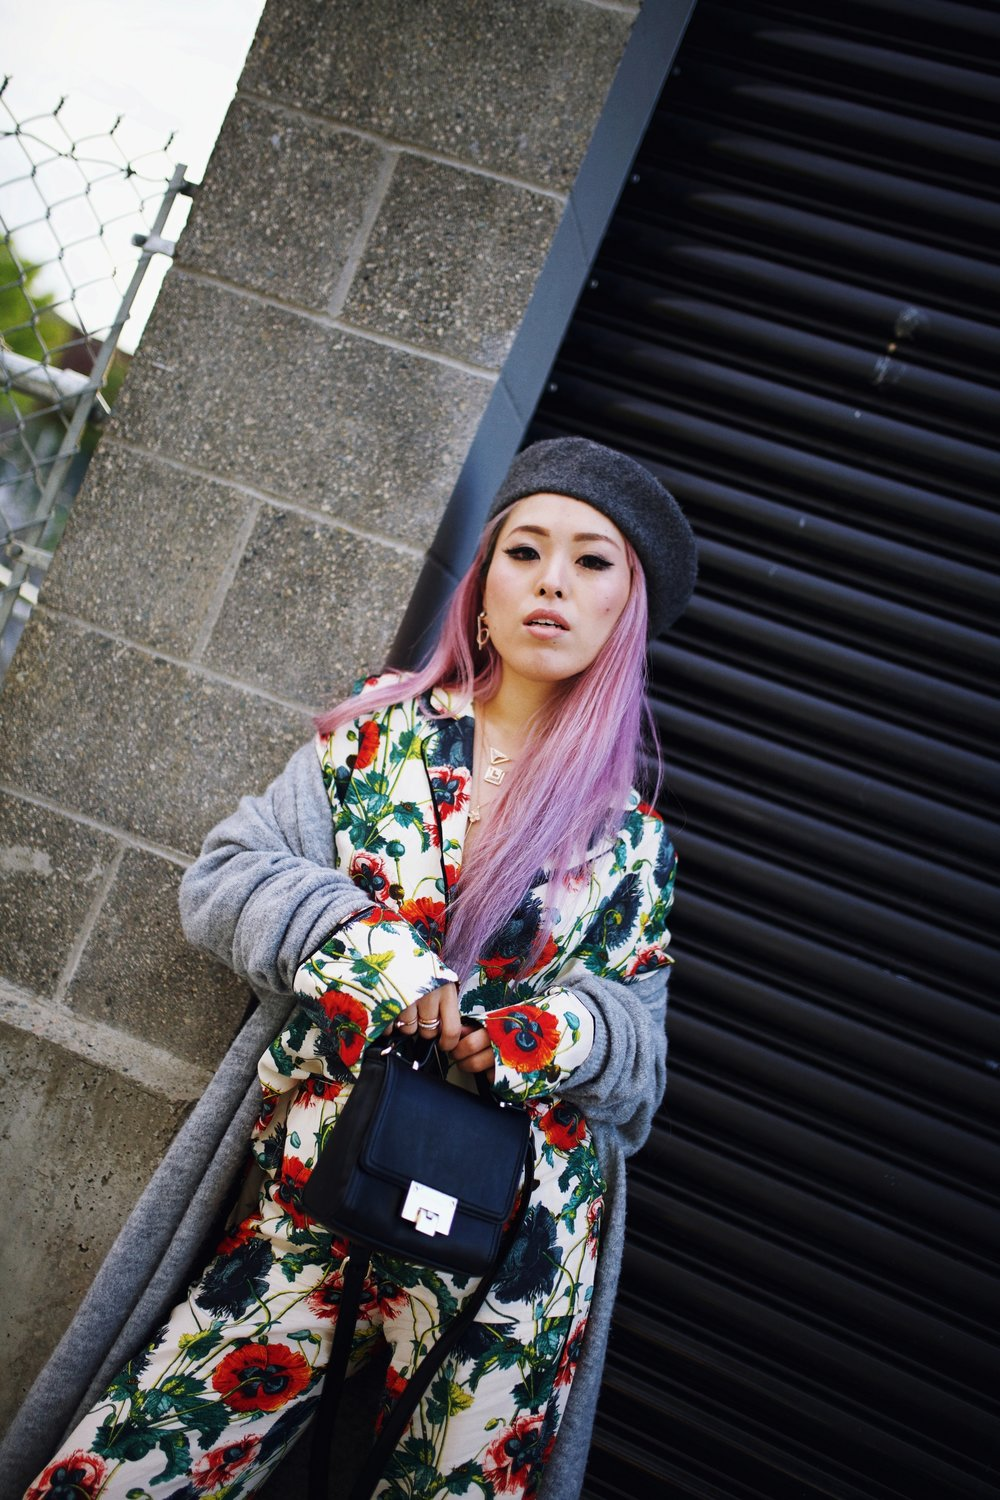 Moussy Gray Long Cardigan-Free People Sunglasses-H&M Floral Pajama-Forever 21 Gray Beret & White Ankle Boots-Swarovski Earrings & Necklaces-Pink hair-Aika's Love Closet-Petite-Fashion Style Seattle Blogger From Japan